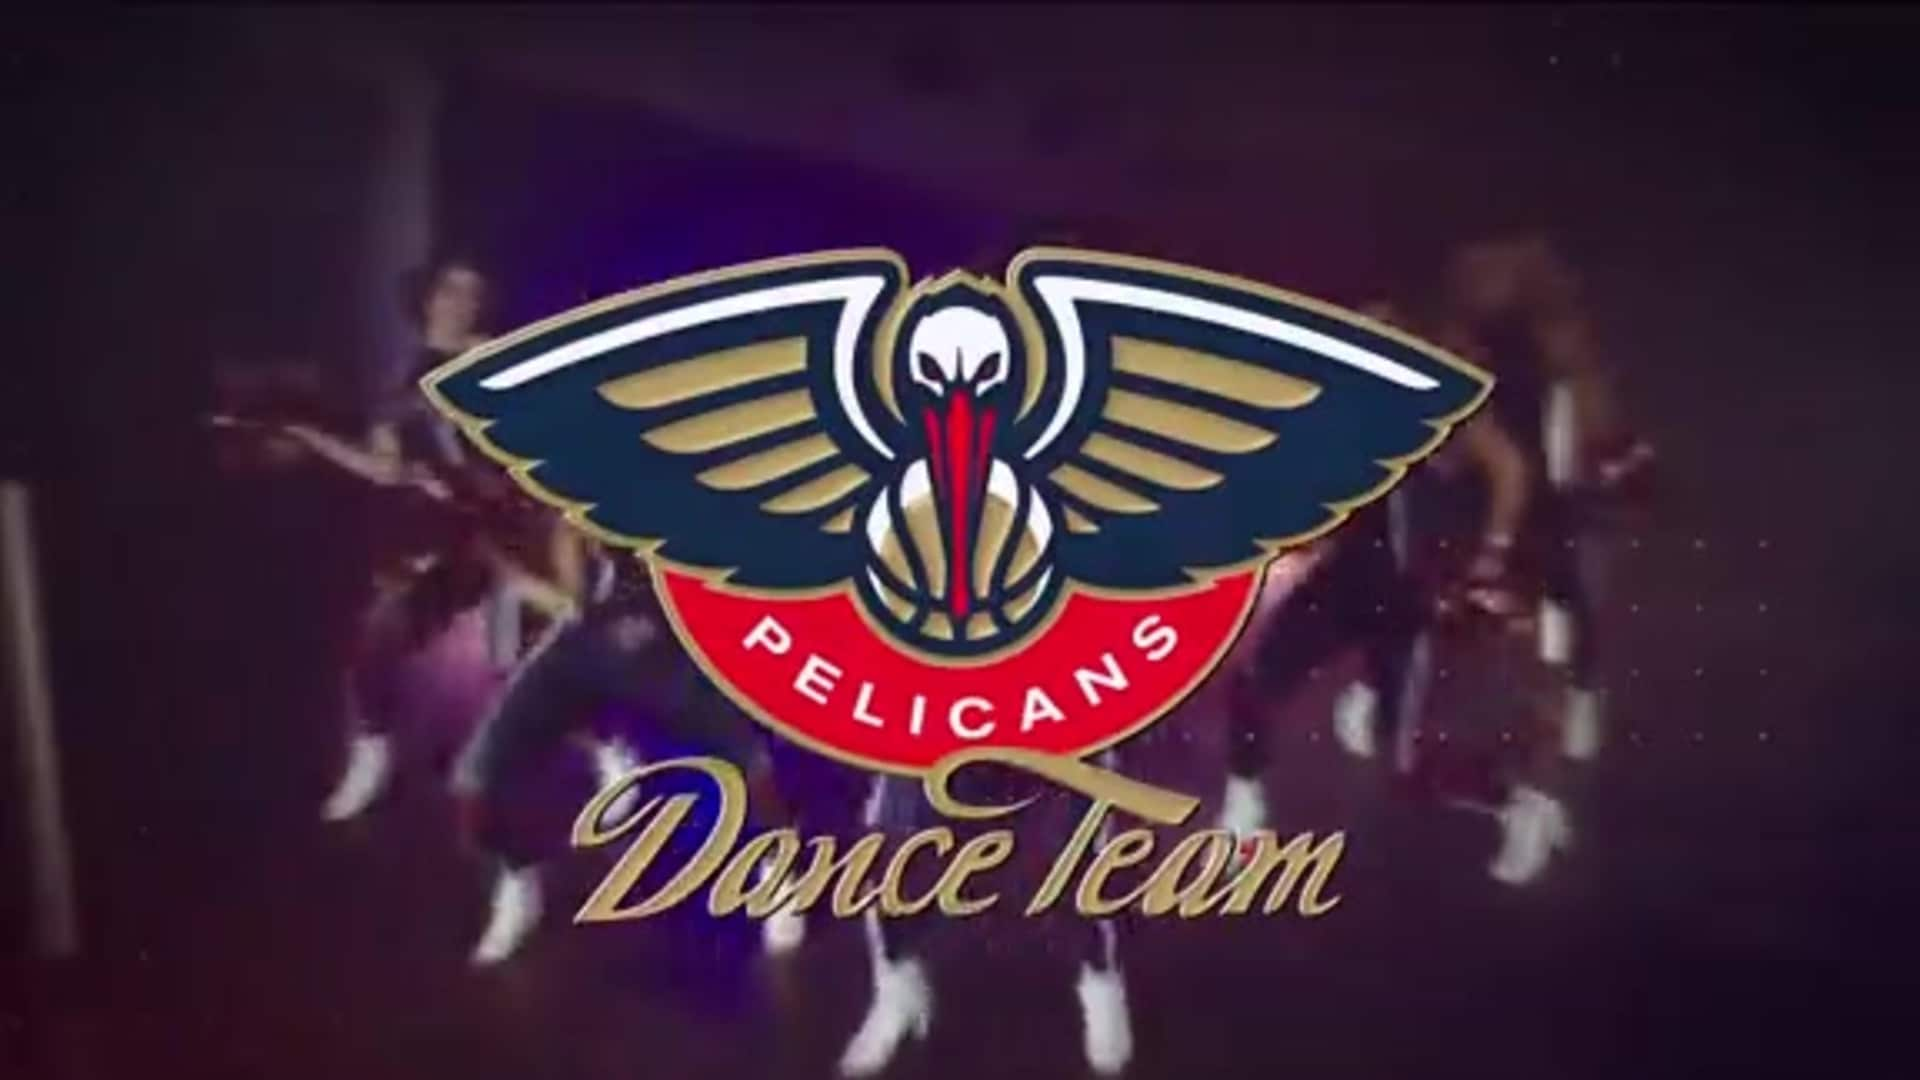 Entertainment: Pelicans Dance Team 2nd quarter performance - December 3 vs. Dallas Mavericks